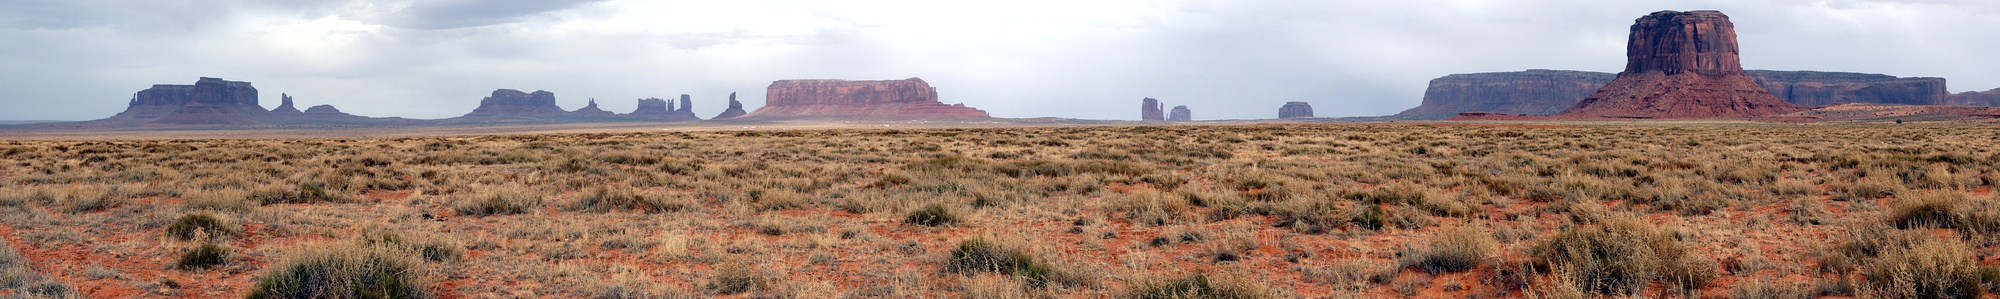 2011-MonumentValley-panoram.jpg